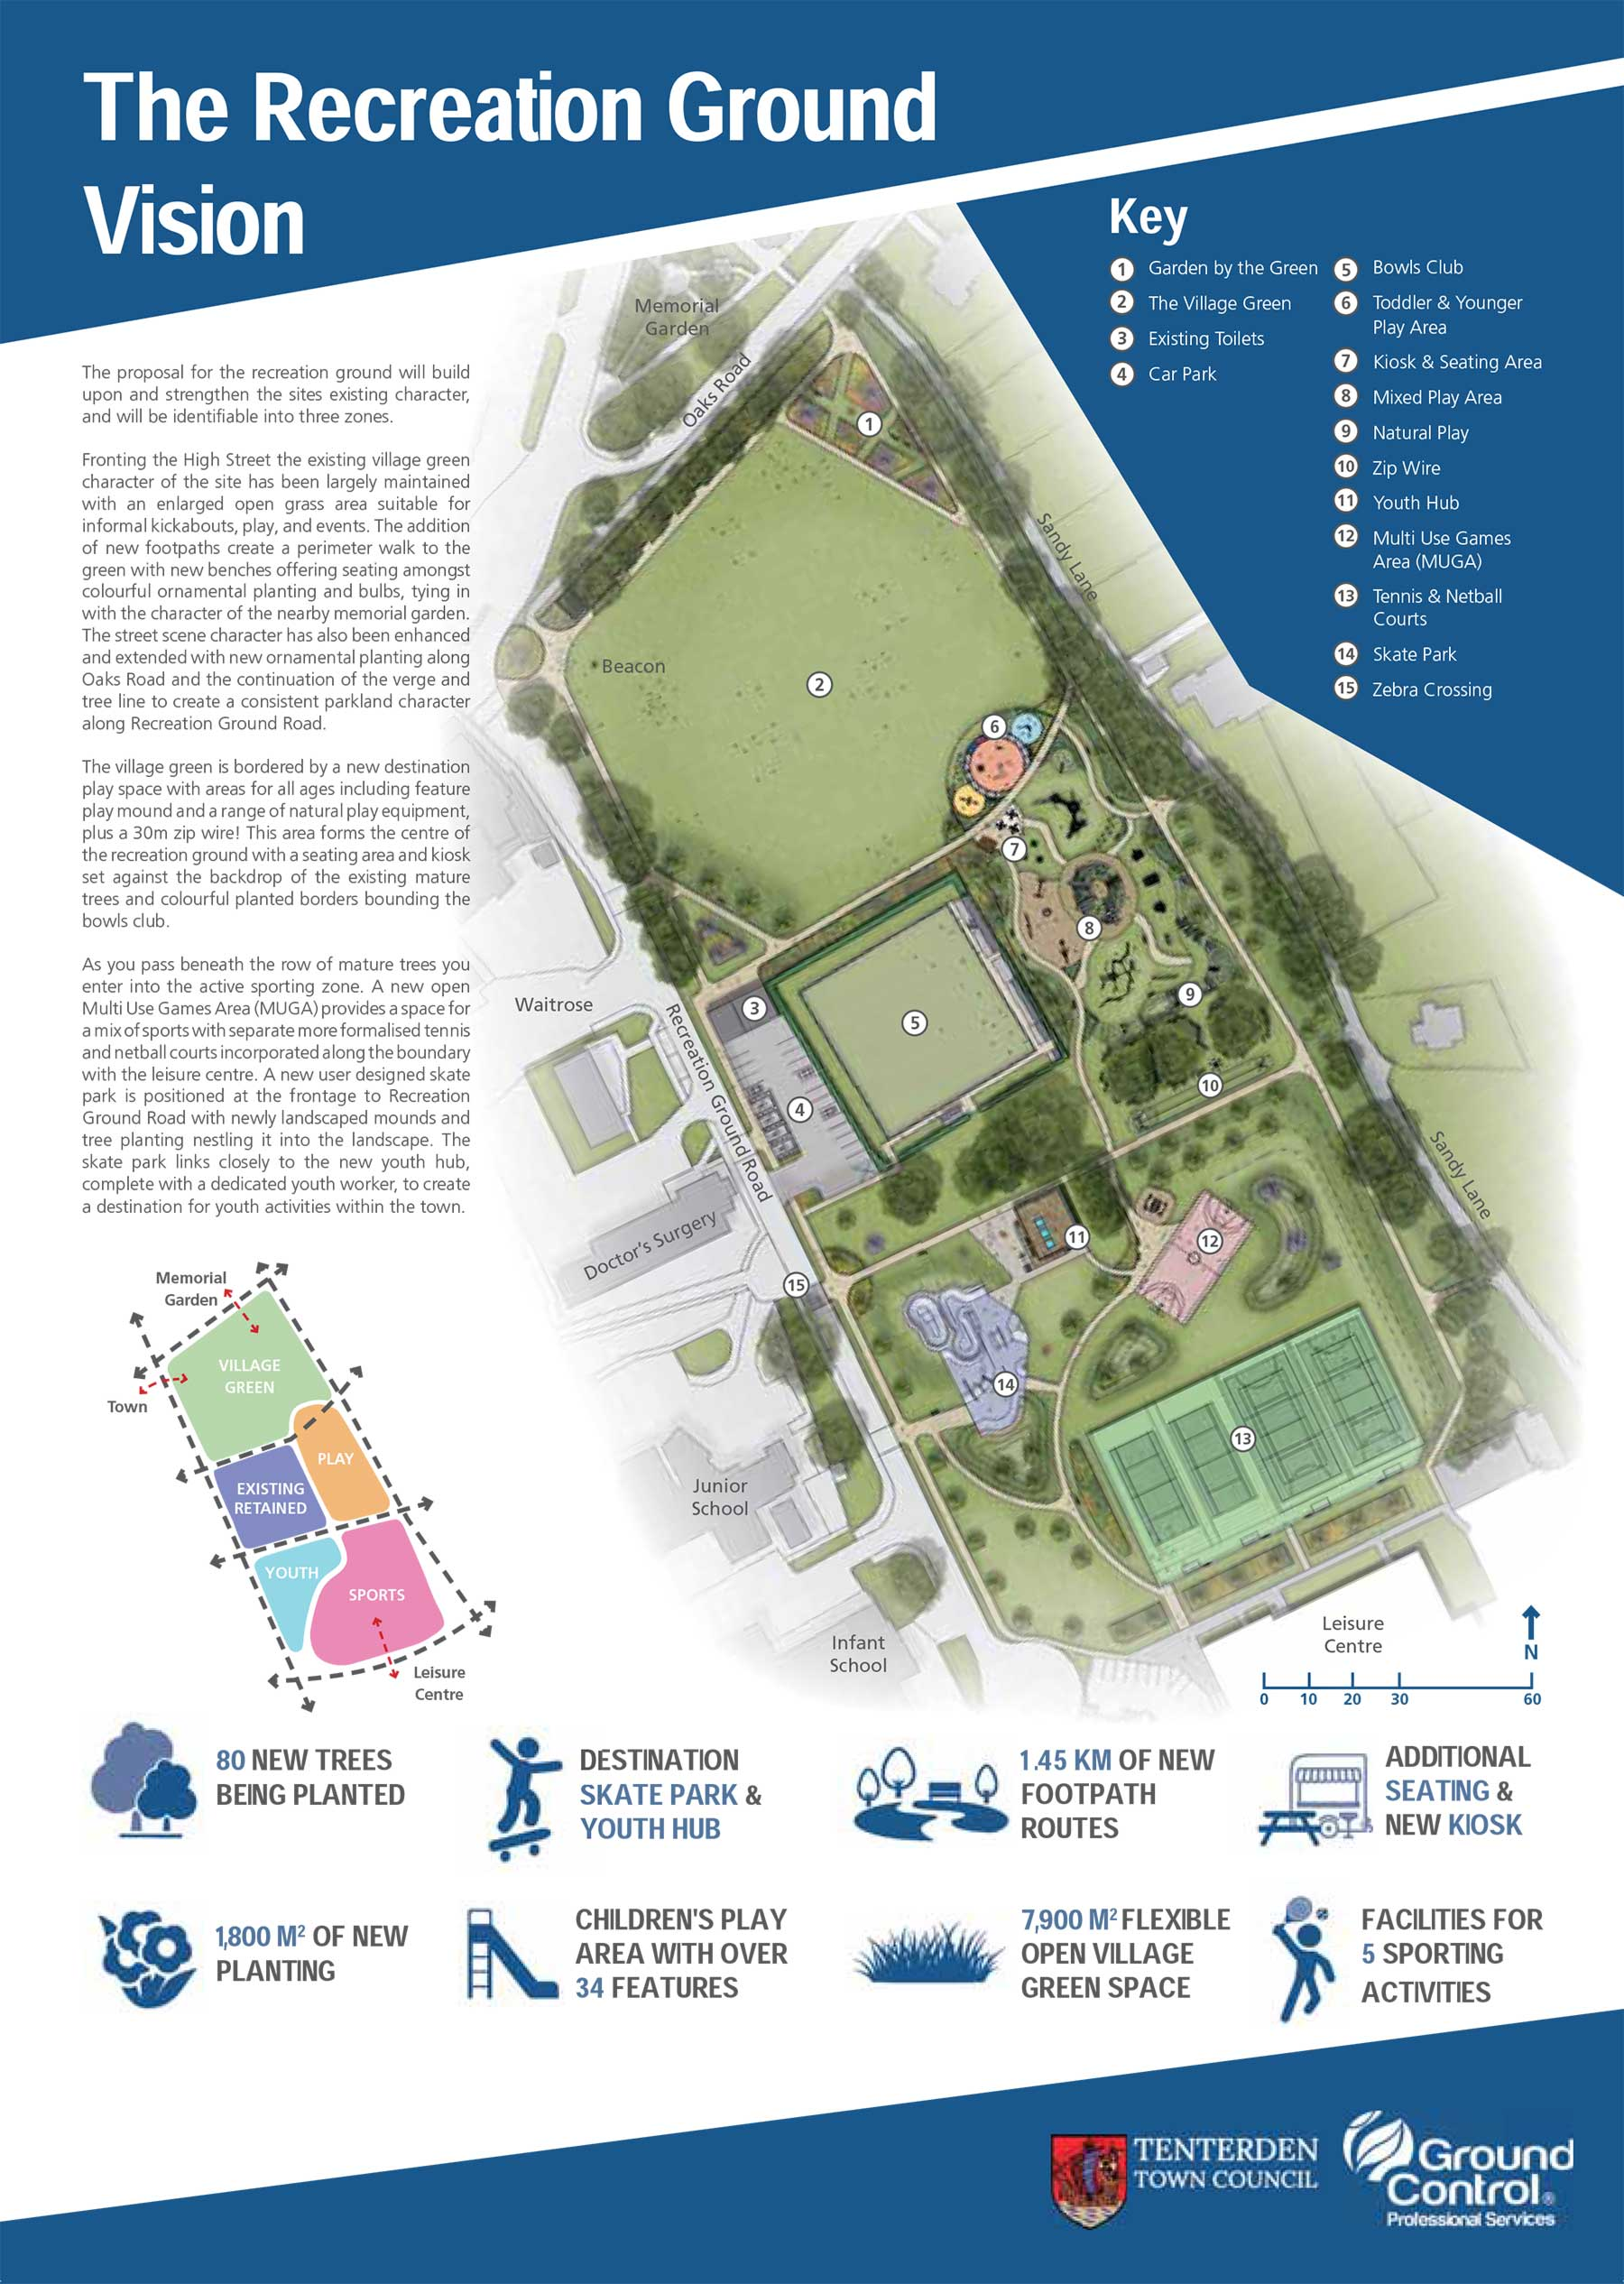 The Recreation Ground Vision: Exhibition Board